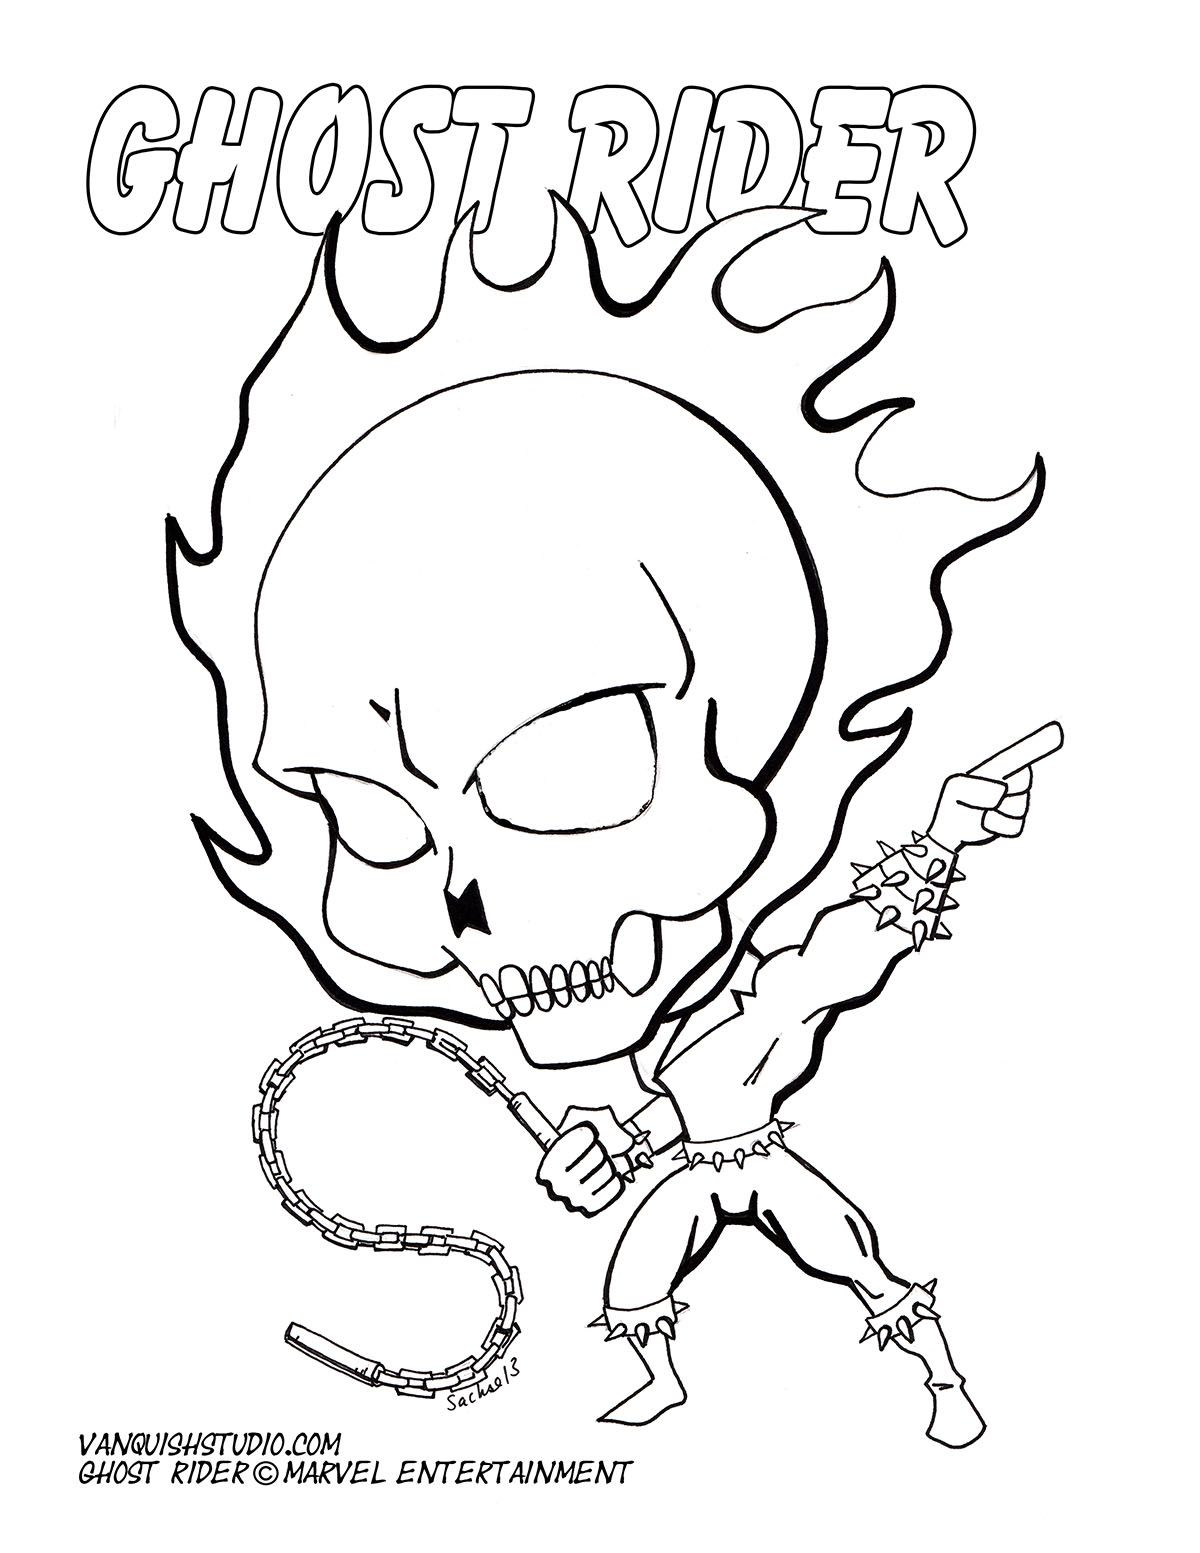 Free Coloring Page Of Chibi Ghostrider Superhero Coloring Pages Superhero Coloring Captain America Coloring Pages